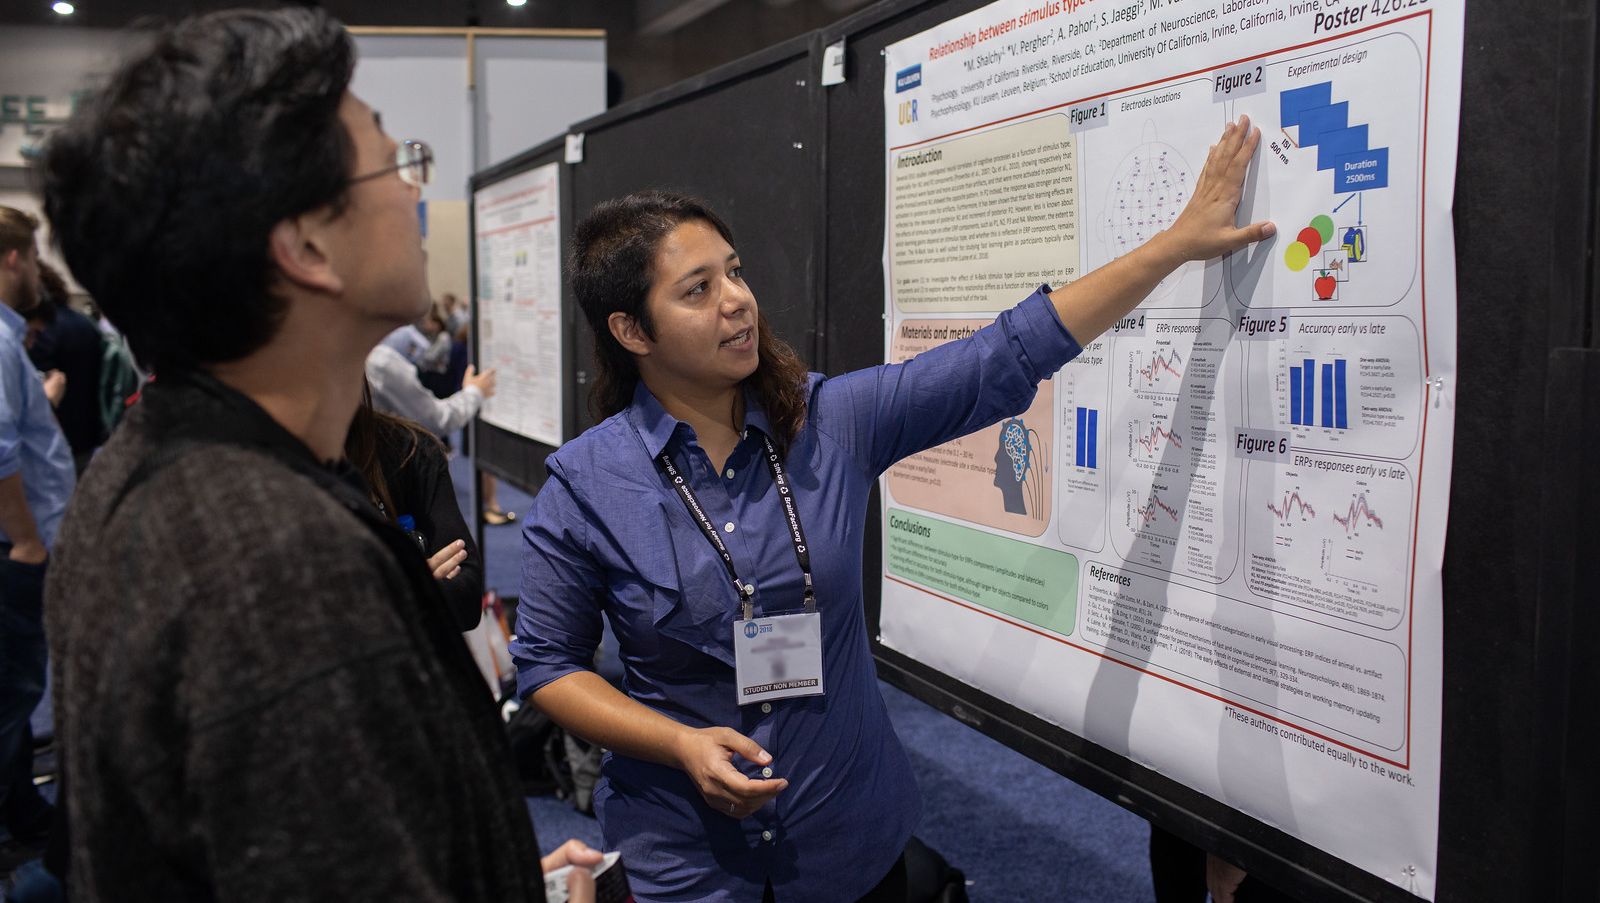 One Neuroscience 2018 attendee explaining poster presentation to another attendee